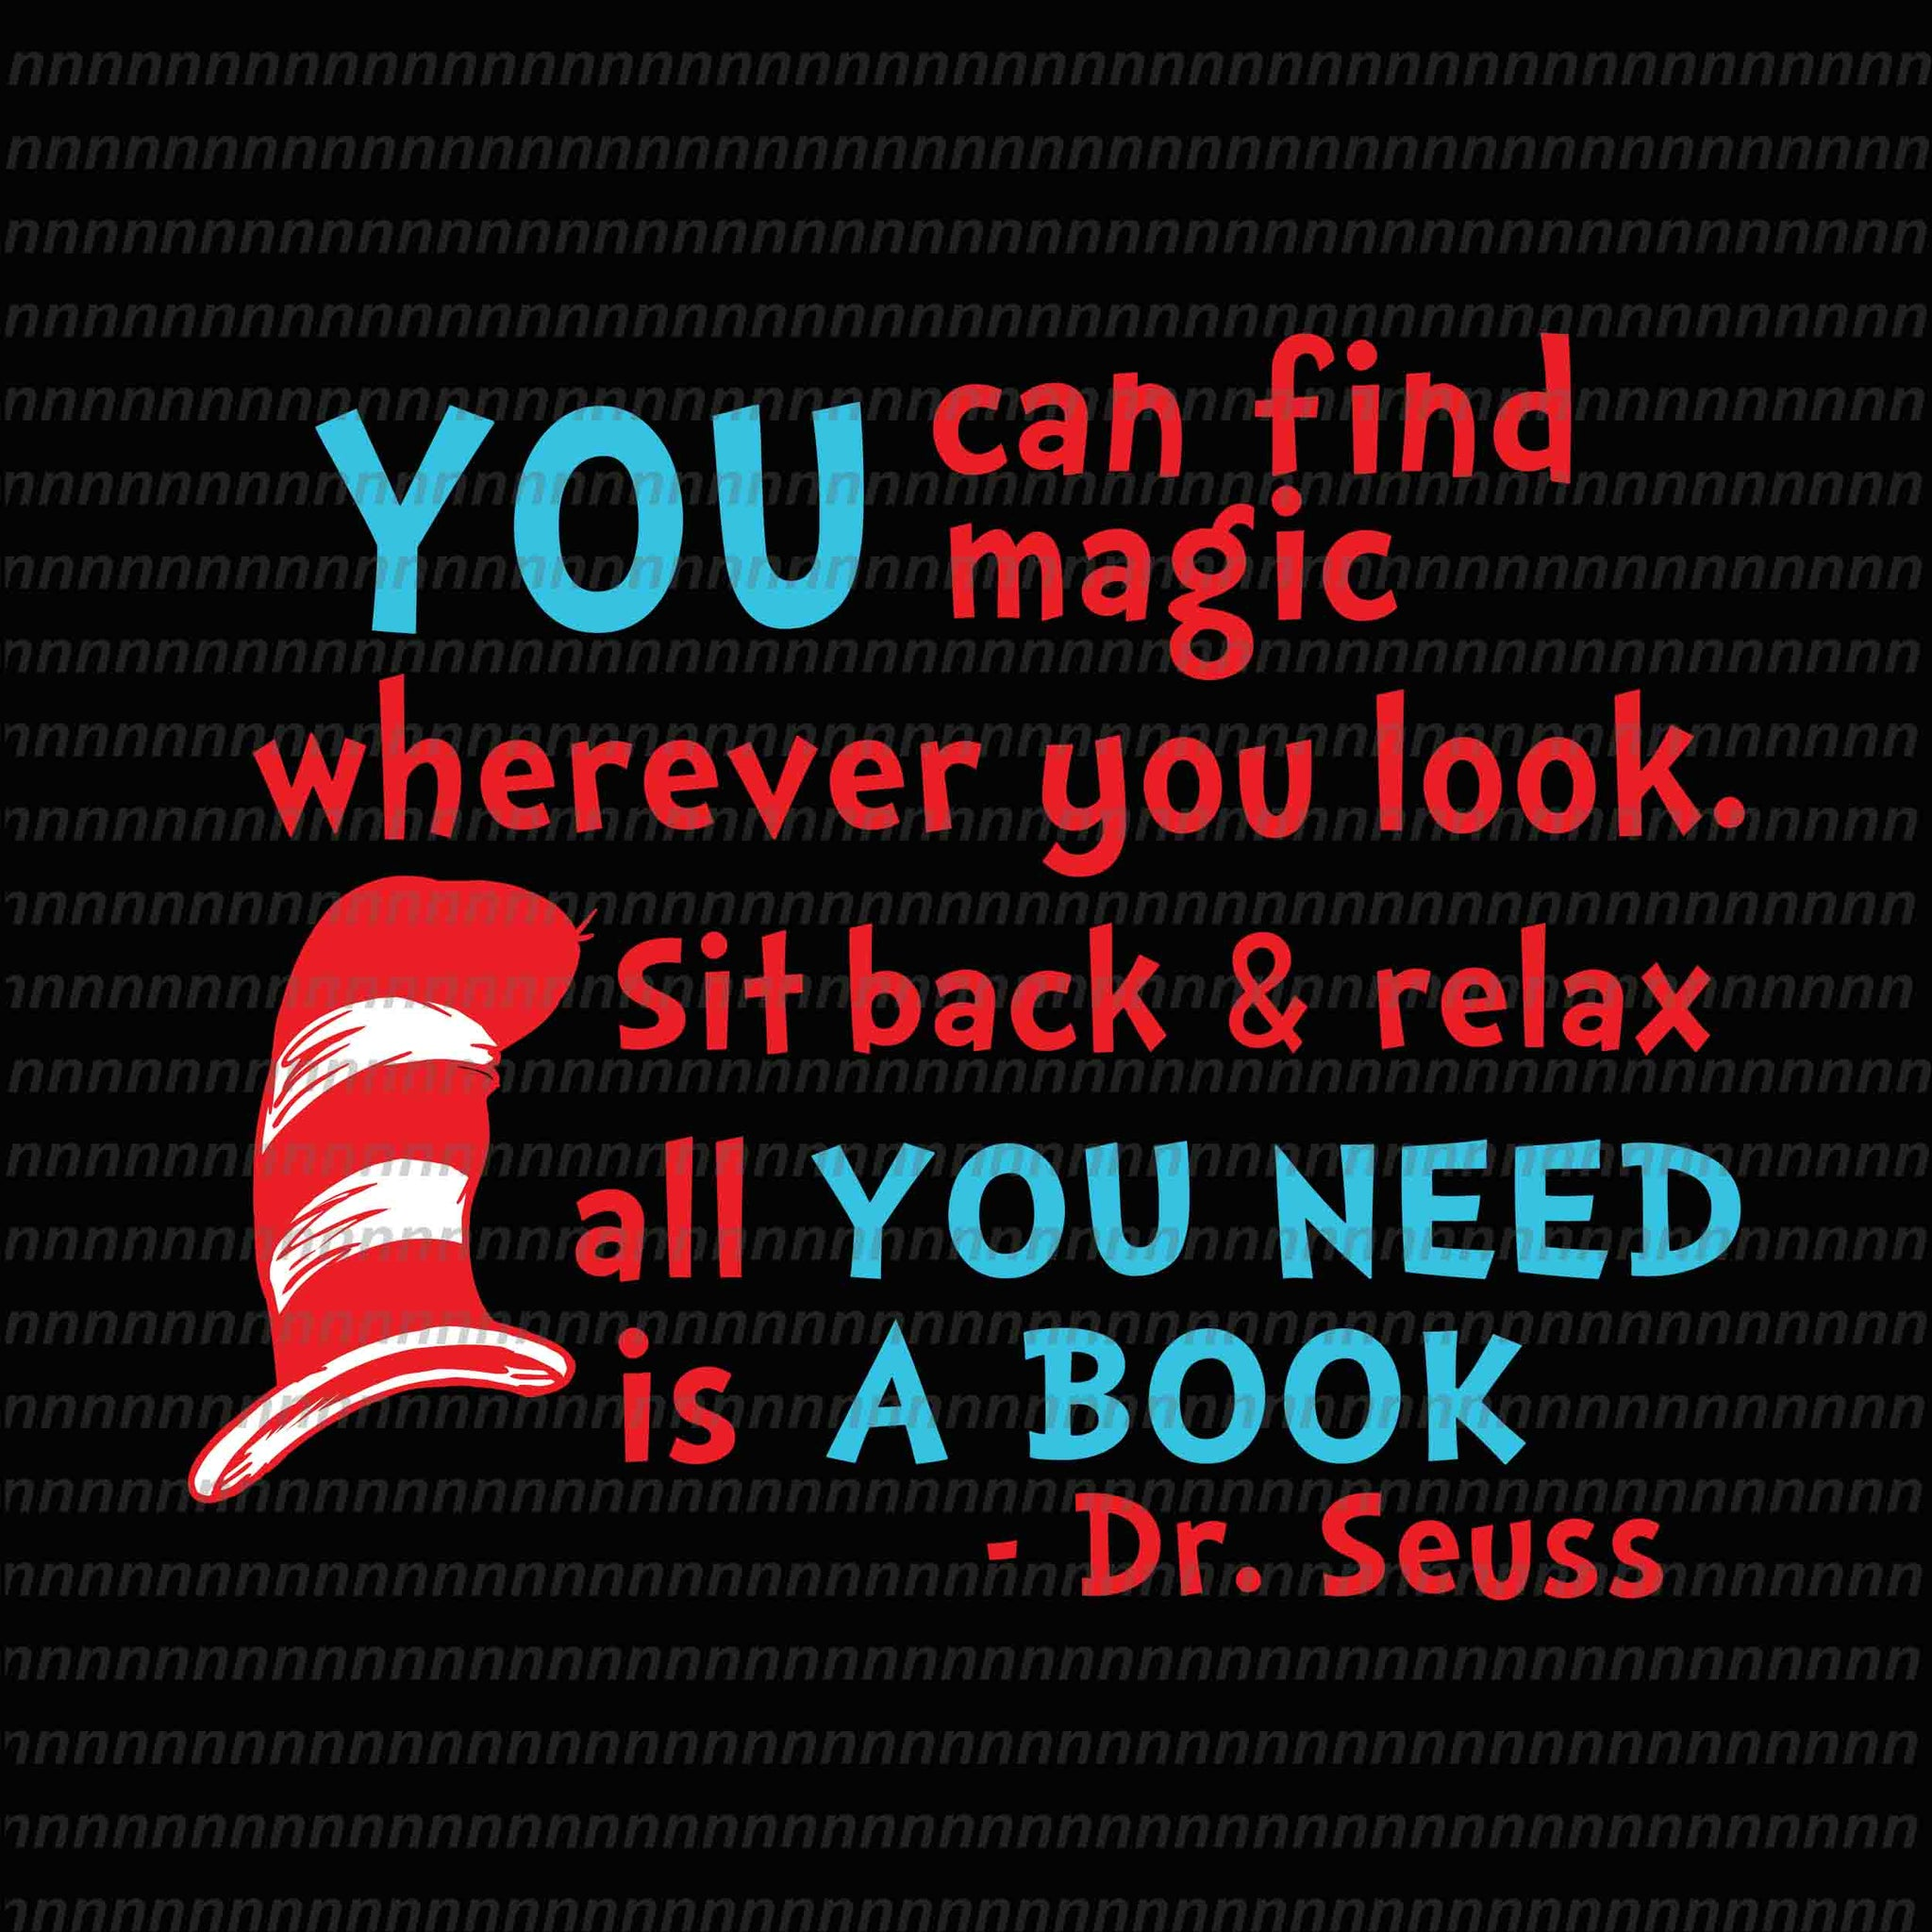 You can find magic wherever you look, dr seuss svg,dr seuss vector, dr seuss quote, dr seuss design, Cat in the hat svg, thing 1 thing 2 thing 3, svg, png, dxf, eps file